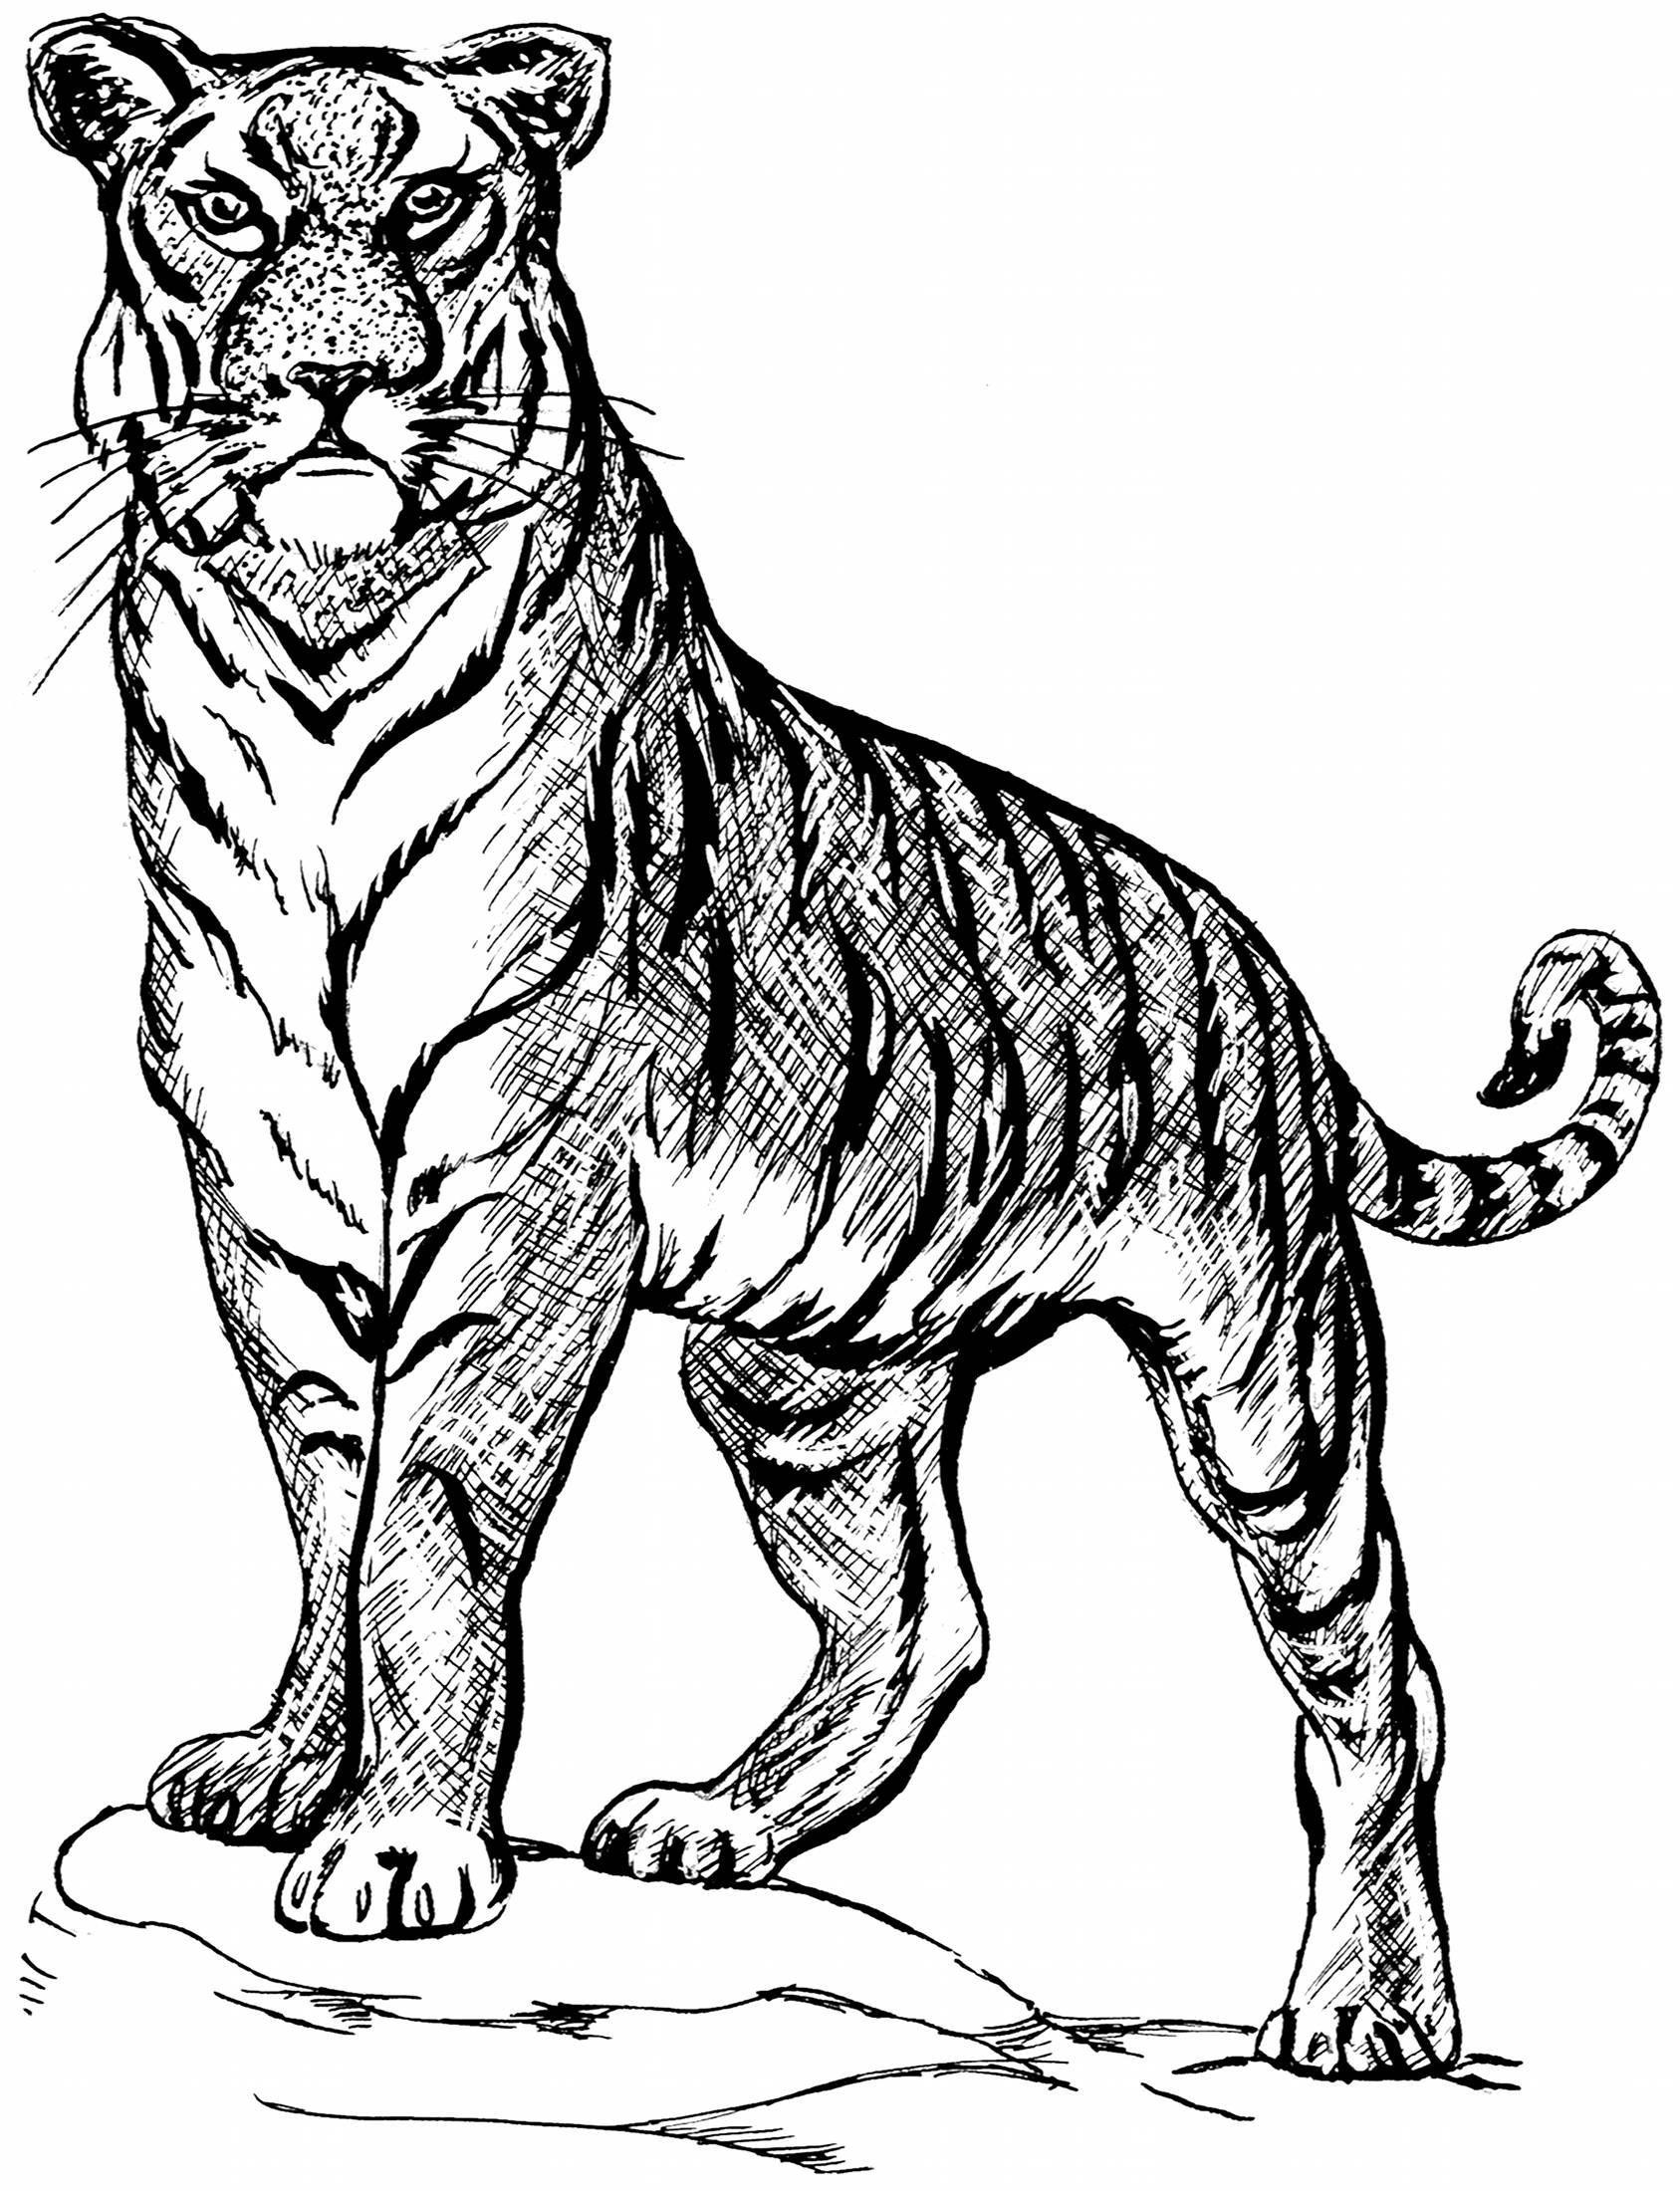 coloring pictures of tigers free printable tiger coloring pages for kids pictures tigers coloring of